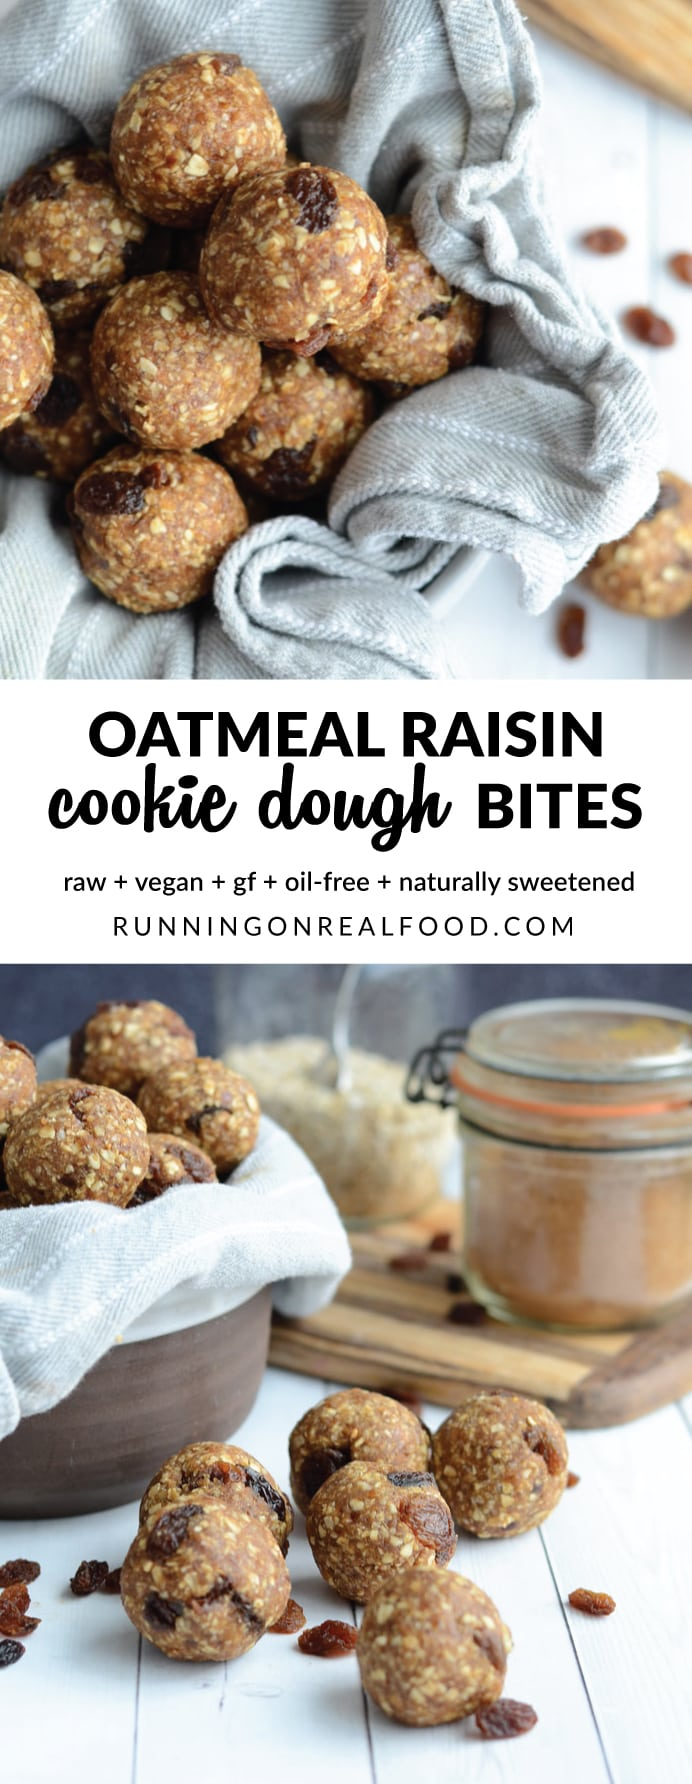 Who doesn't love a good oatmeal raisin cookie!? I sure do but I don't love the loads of sugar and butter they were most likely made with. The solution? Raw vegan oatmeal raisin cookie dough bites! Ready in minutes with simple ingredients you probably already have. These oatmeal raisin cookie dough bites are raw, vegan, gluten-free and taste amazing!